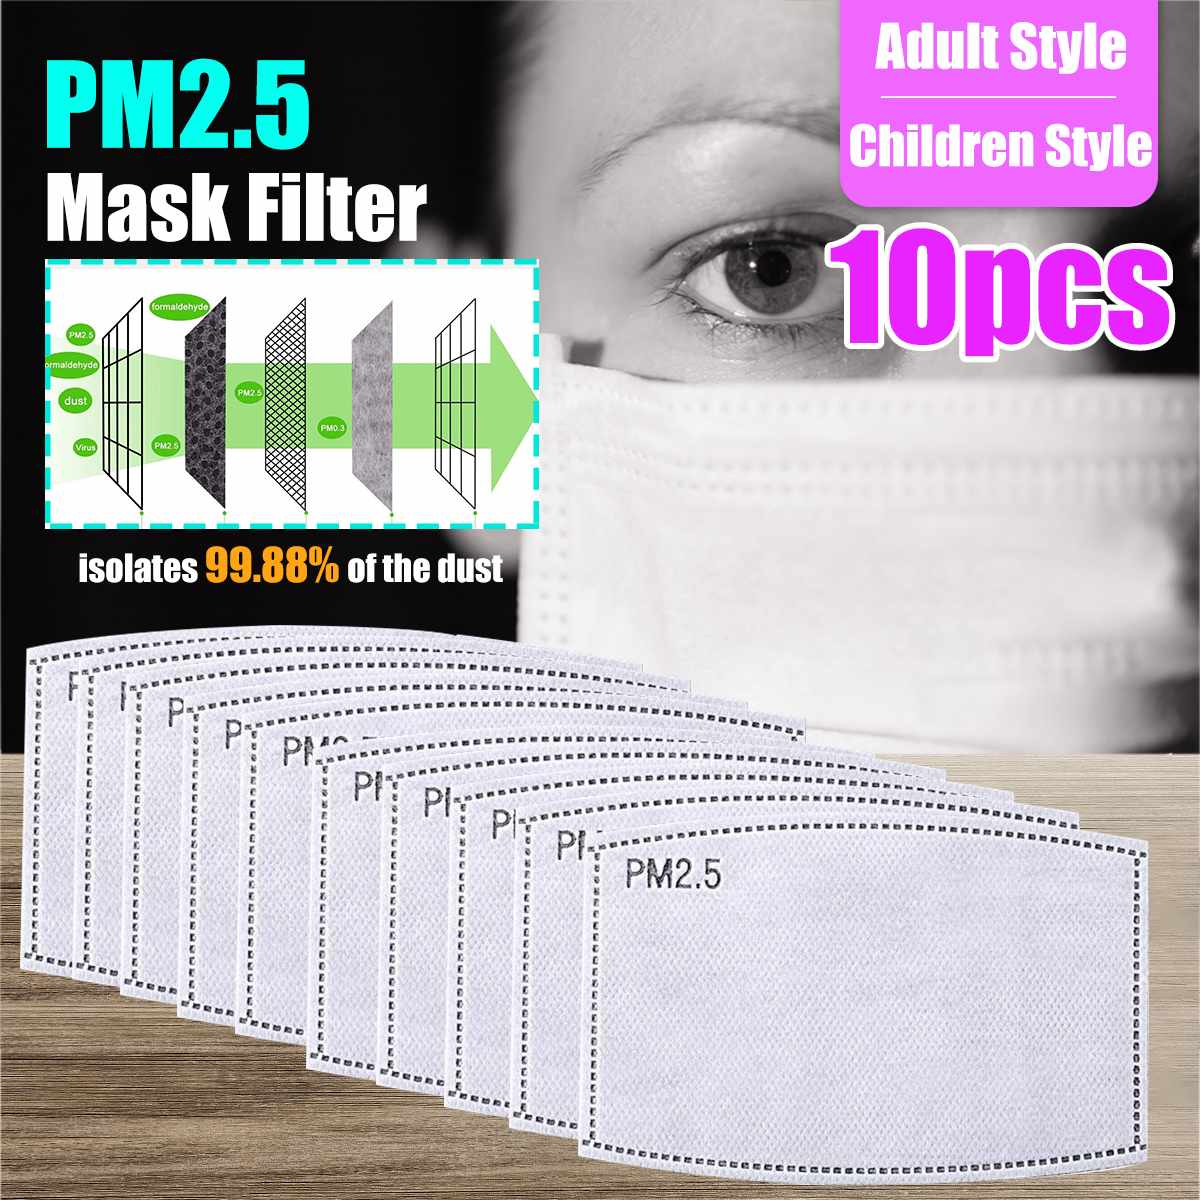 10pcs/Lot PM2.5 Filter Paper Anti Haze Mouth Mask Anti Dust Mask Filter Paper Health Care 99.88% Activated Carbon Filter